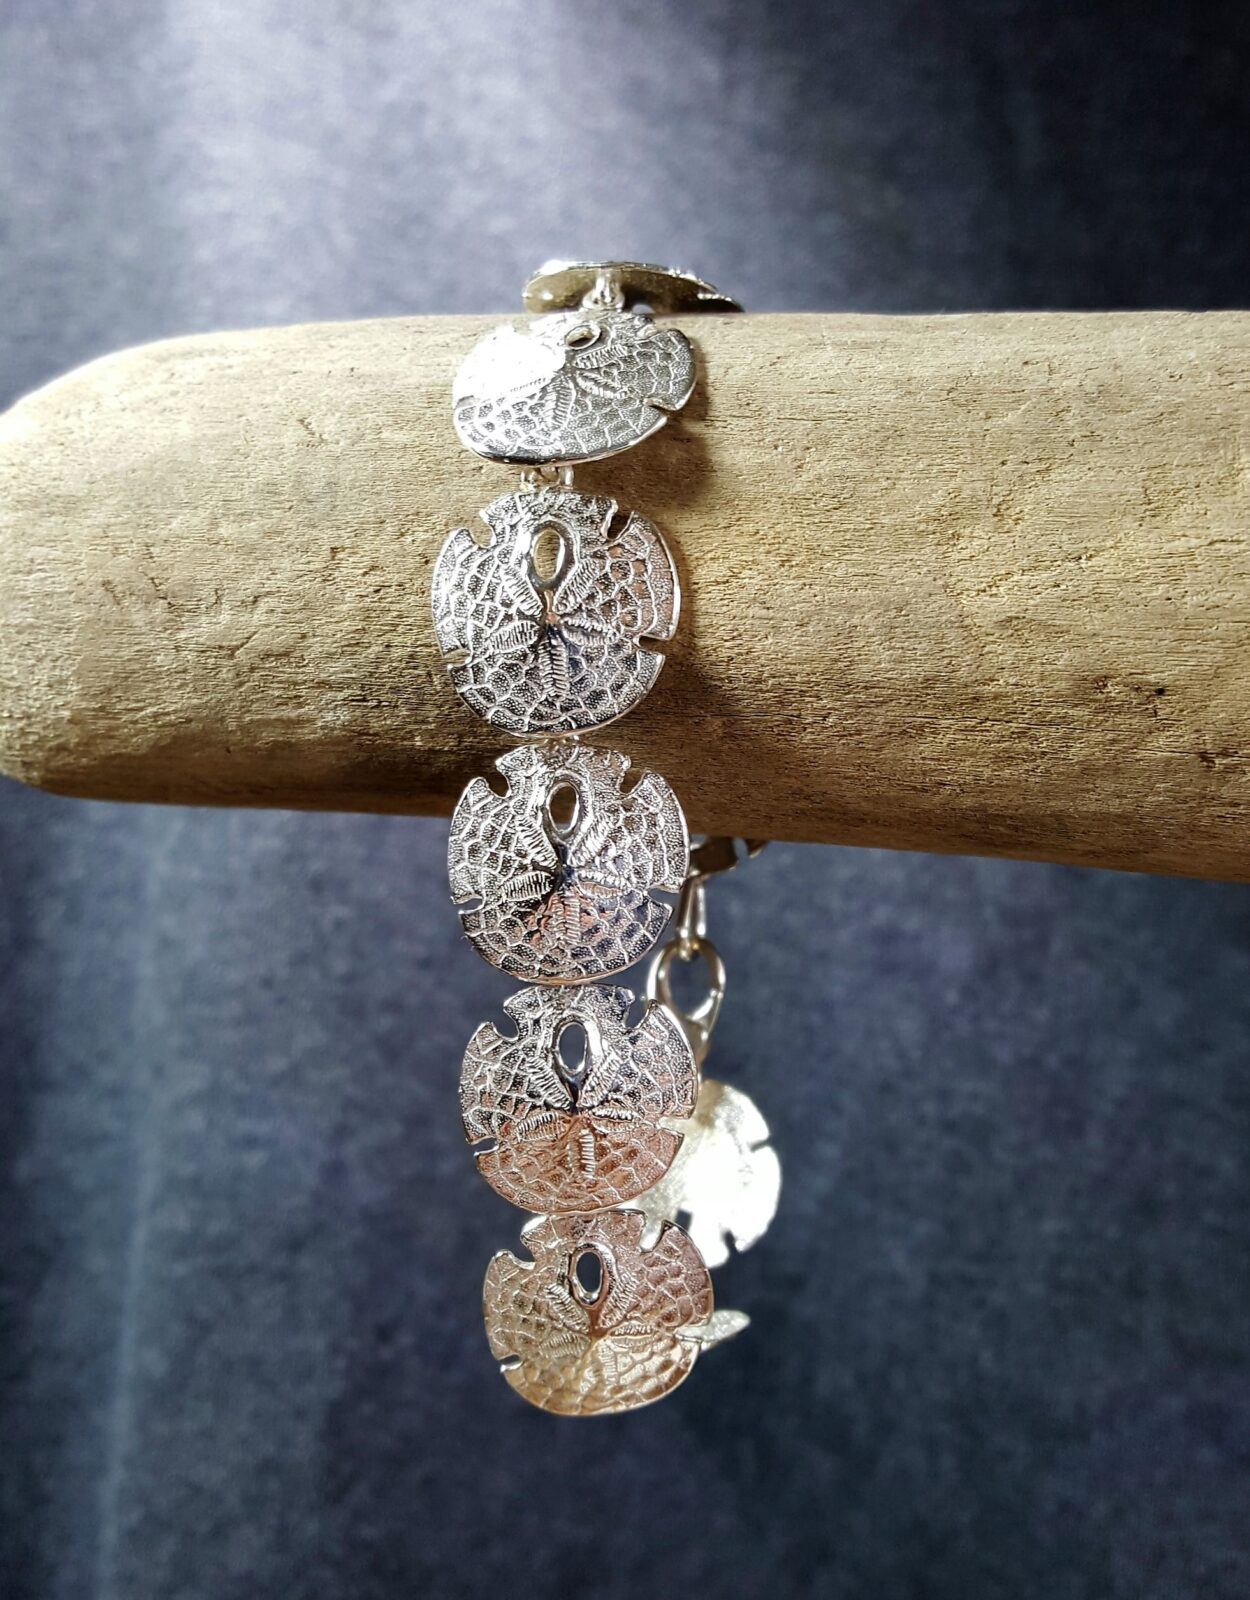 Sand Dollar Bracelet Sterling Silver sizes 7-8 inch